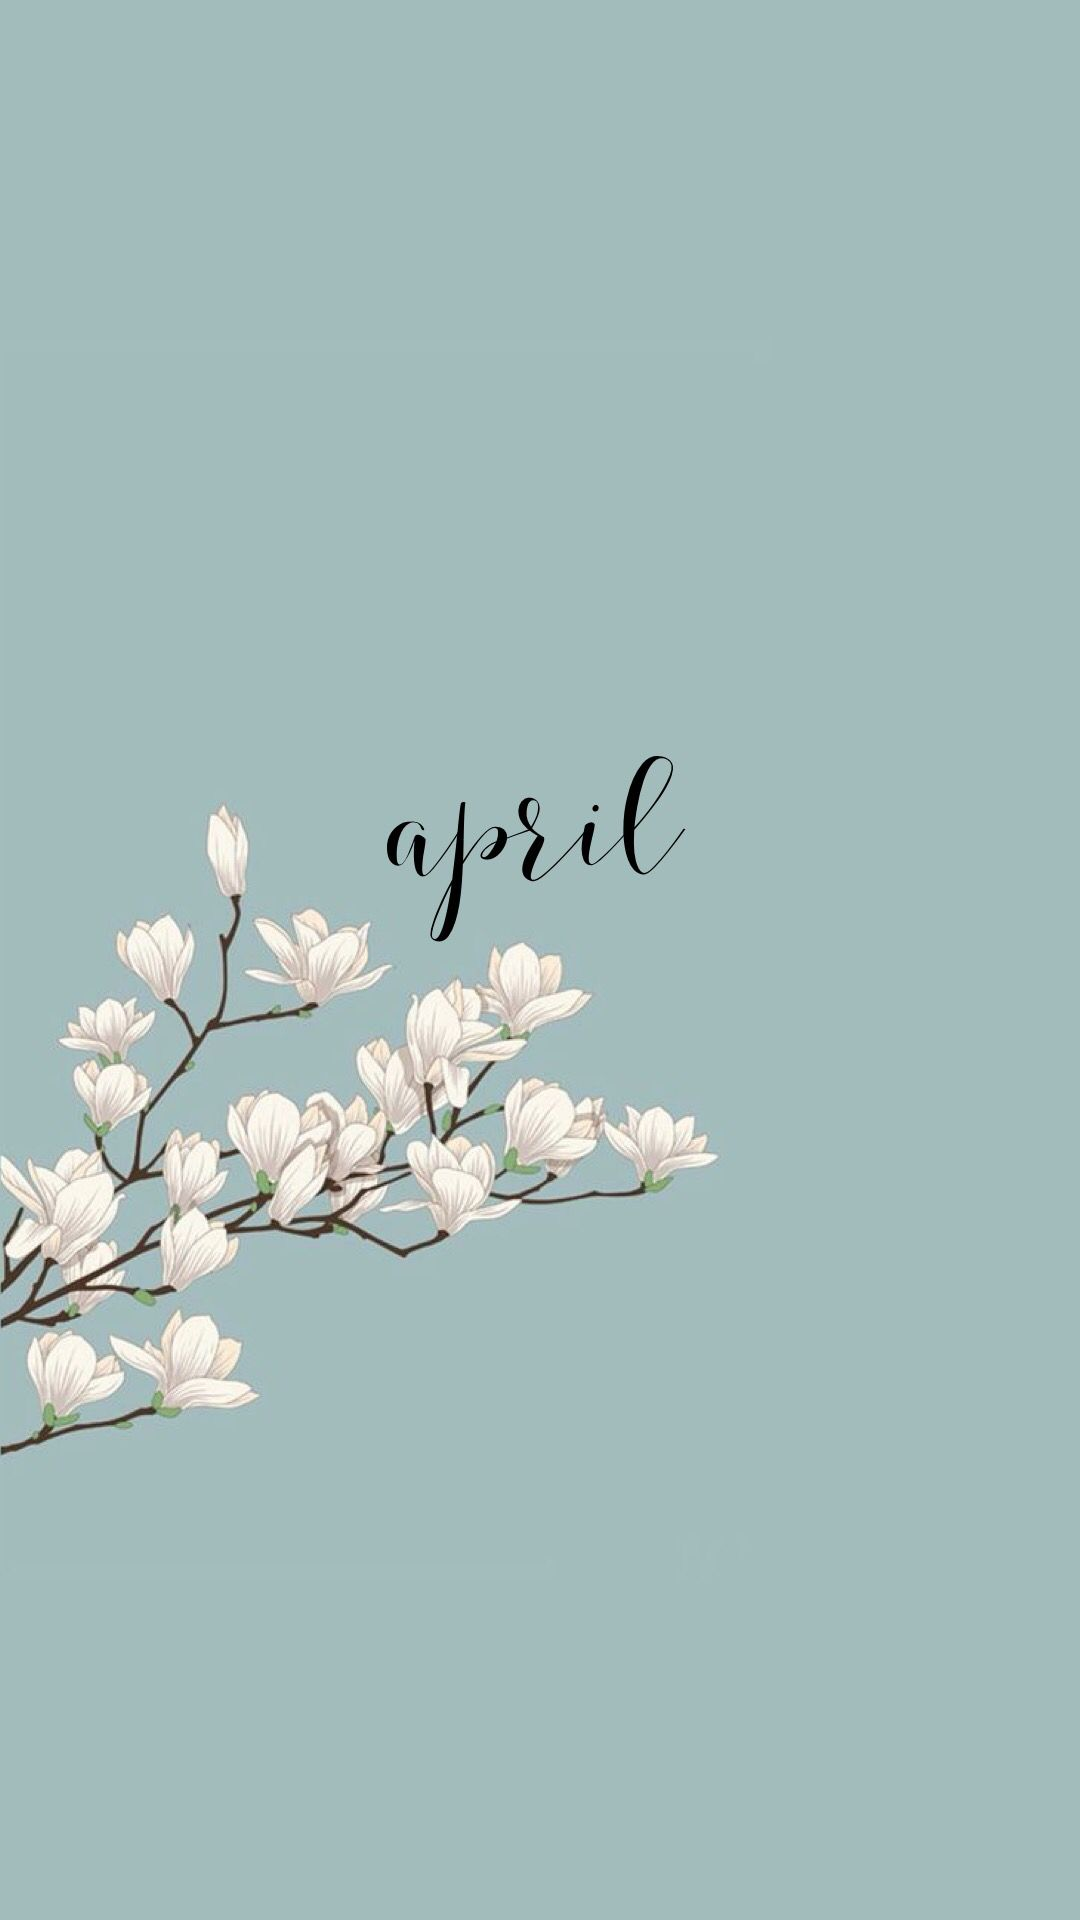 april wallpaper #happyfallyallwallpaper